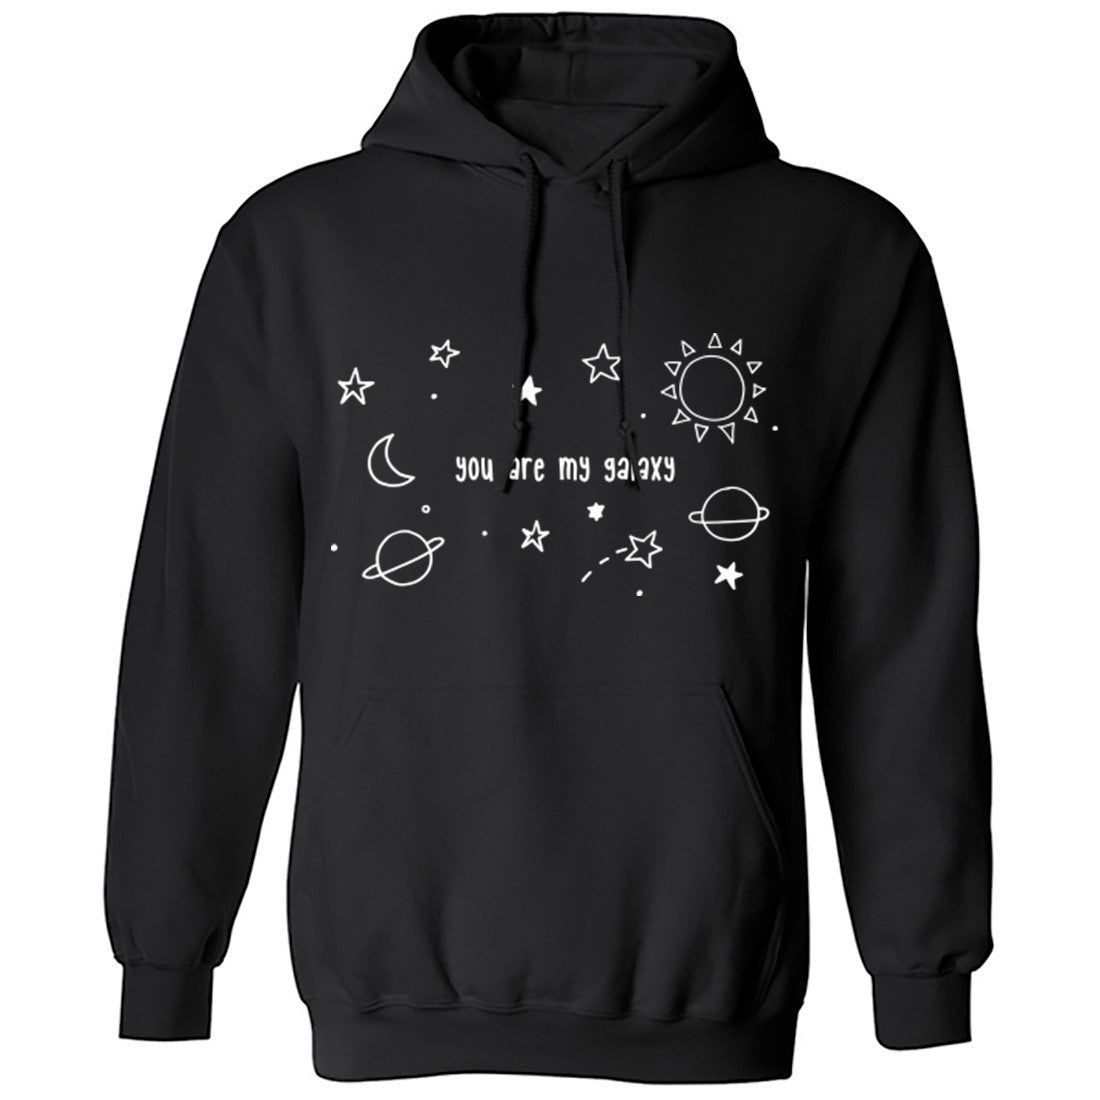 You Are My Galaxy Unisex Hoodie K0394 - Illustrated Identity Ltd.